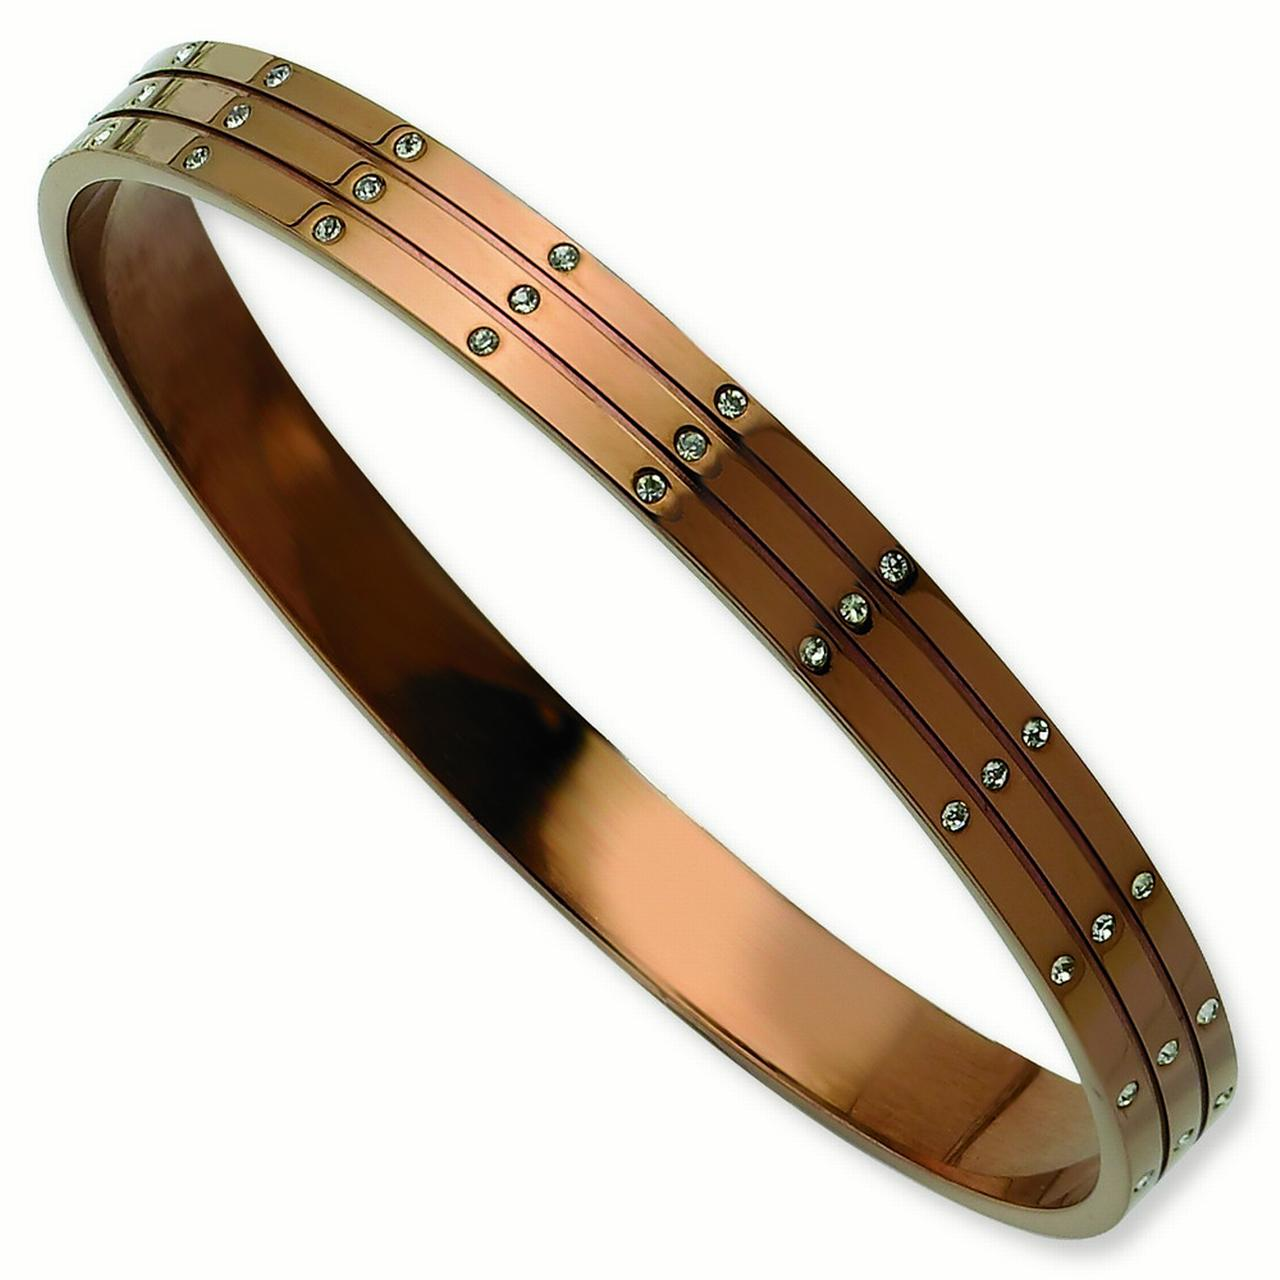 Stainless Steel Polished Brown Plated With Cubic Zirconias Bangle Bracelet